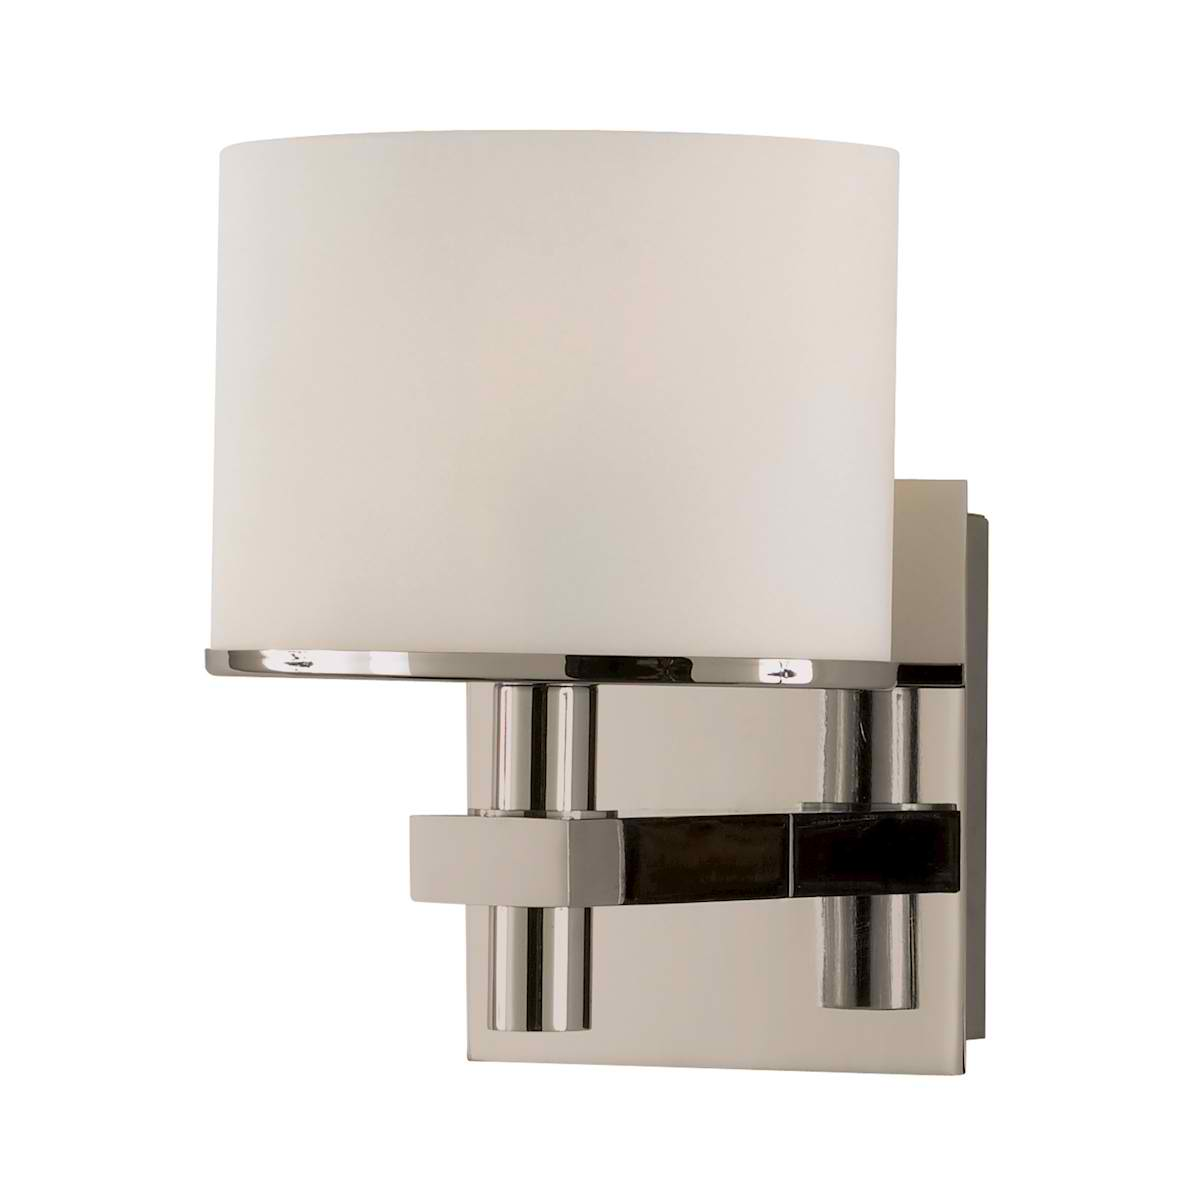 Ombra Vanity - 1 Light with Lamp White Opal Glass / Satin Nickel